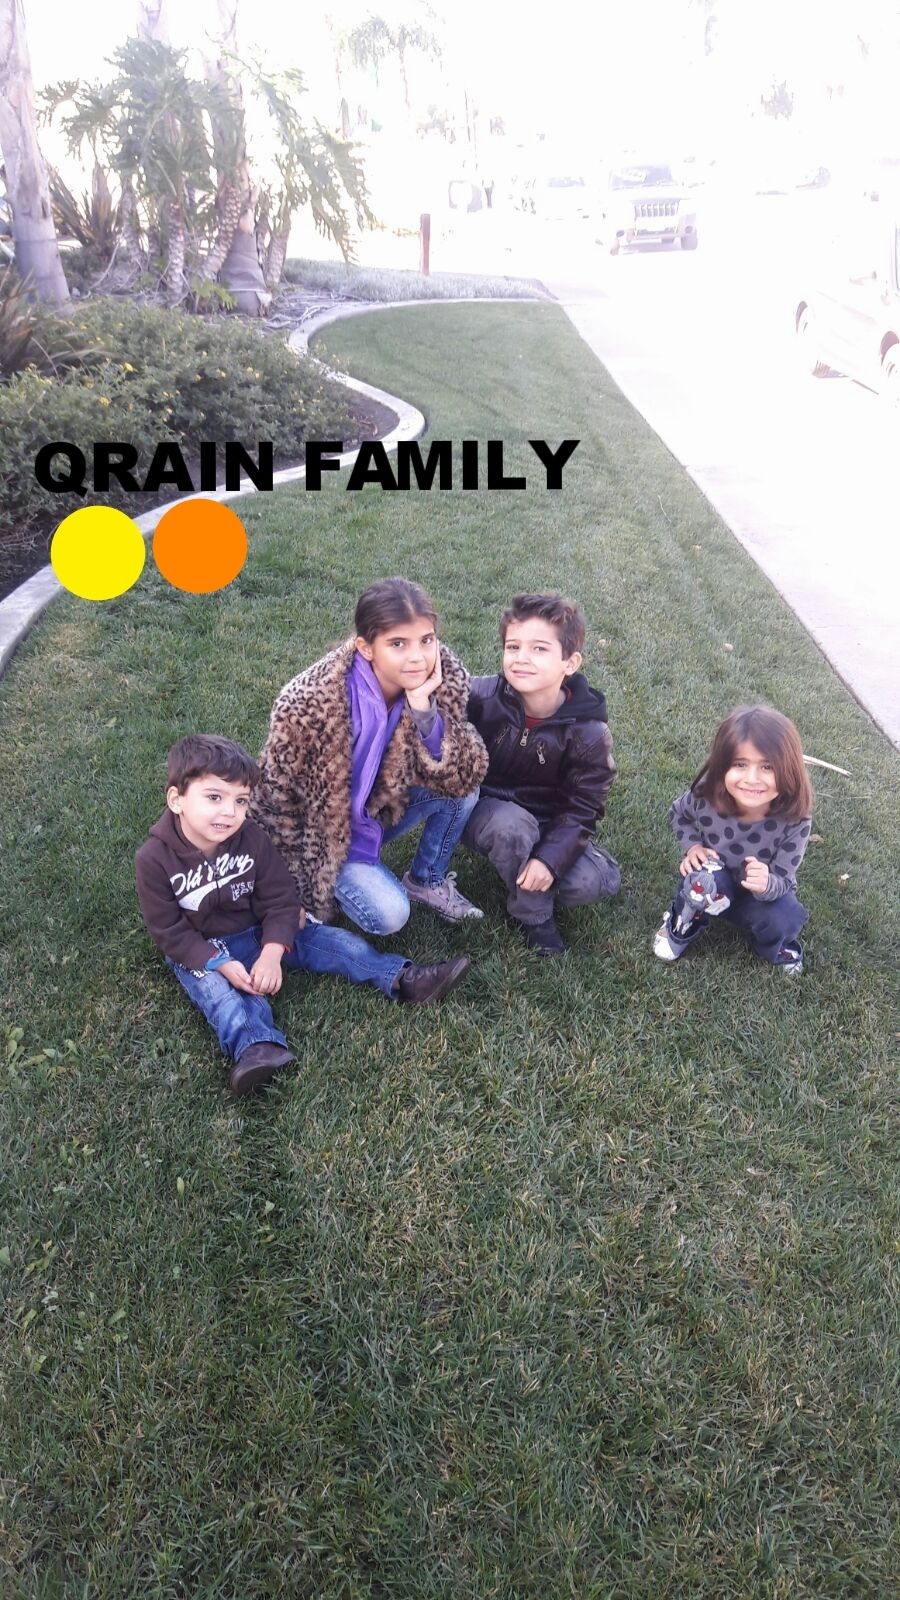 Qrain Family Originally from Homs. Left Syria in 2012 for Jordan. Dad, mom and five children aged 11, 9, 6, 4, and 3. Husband was a plumber in Syria.